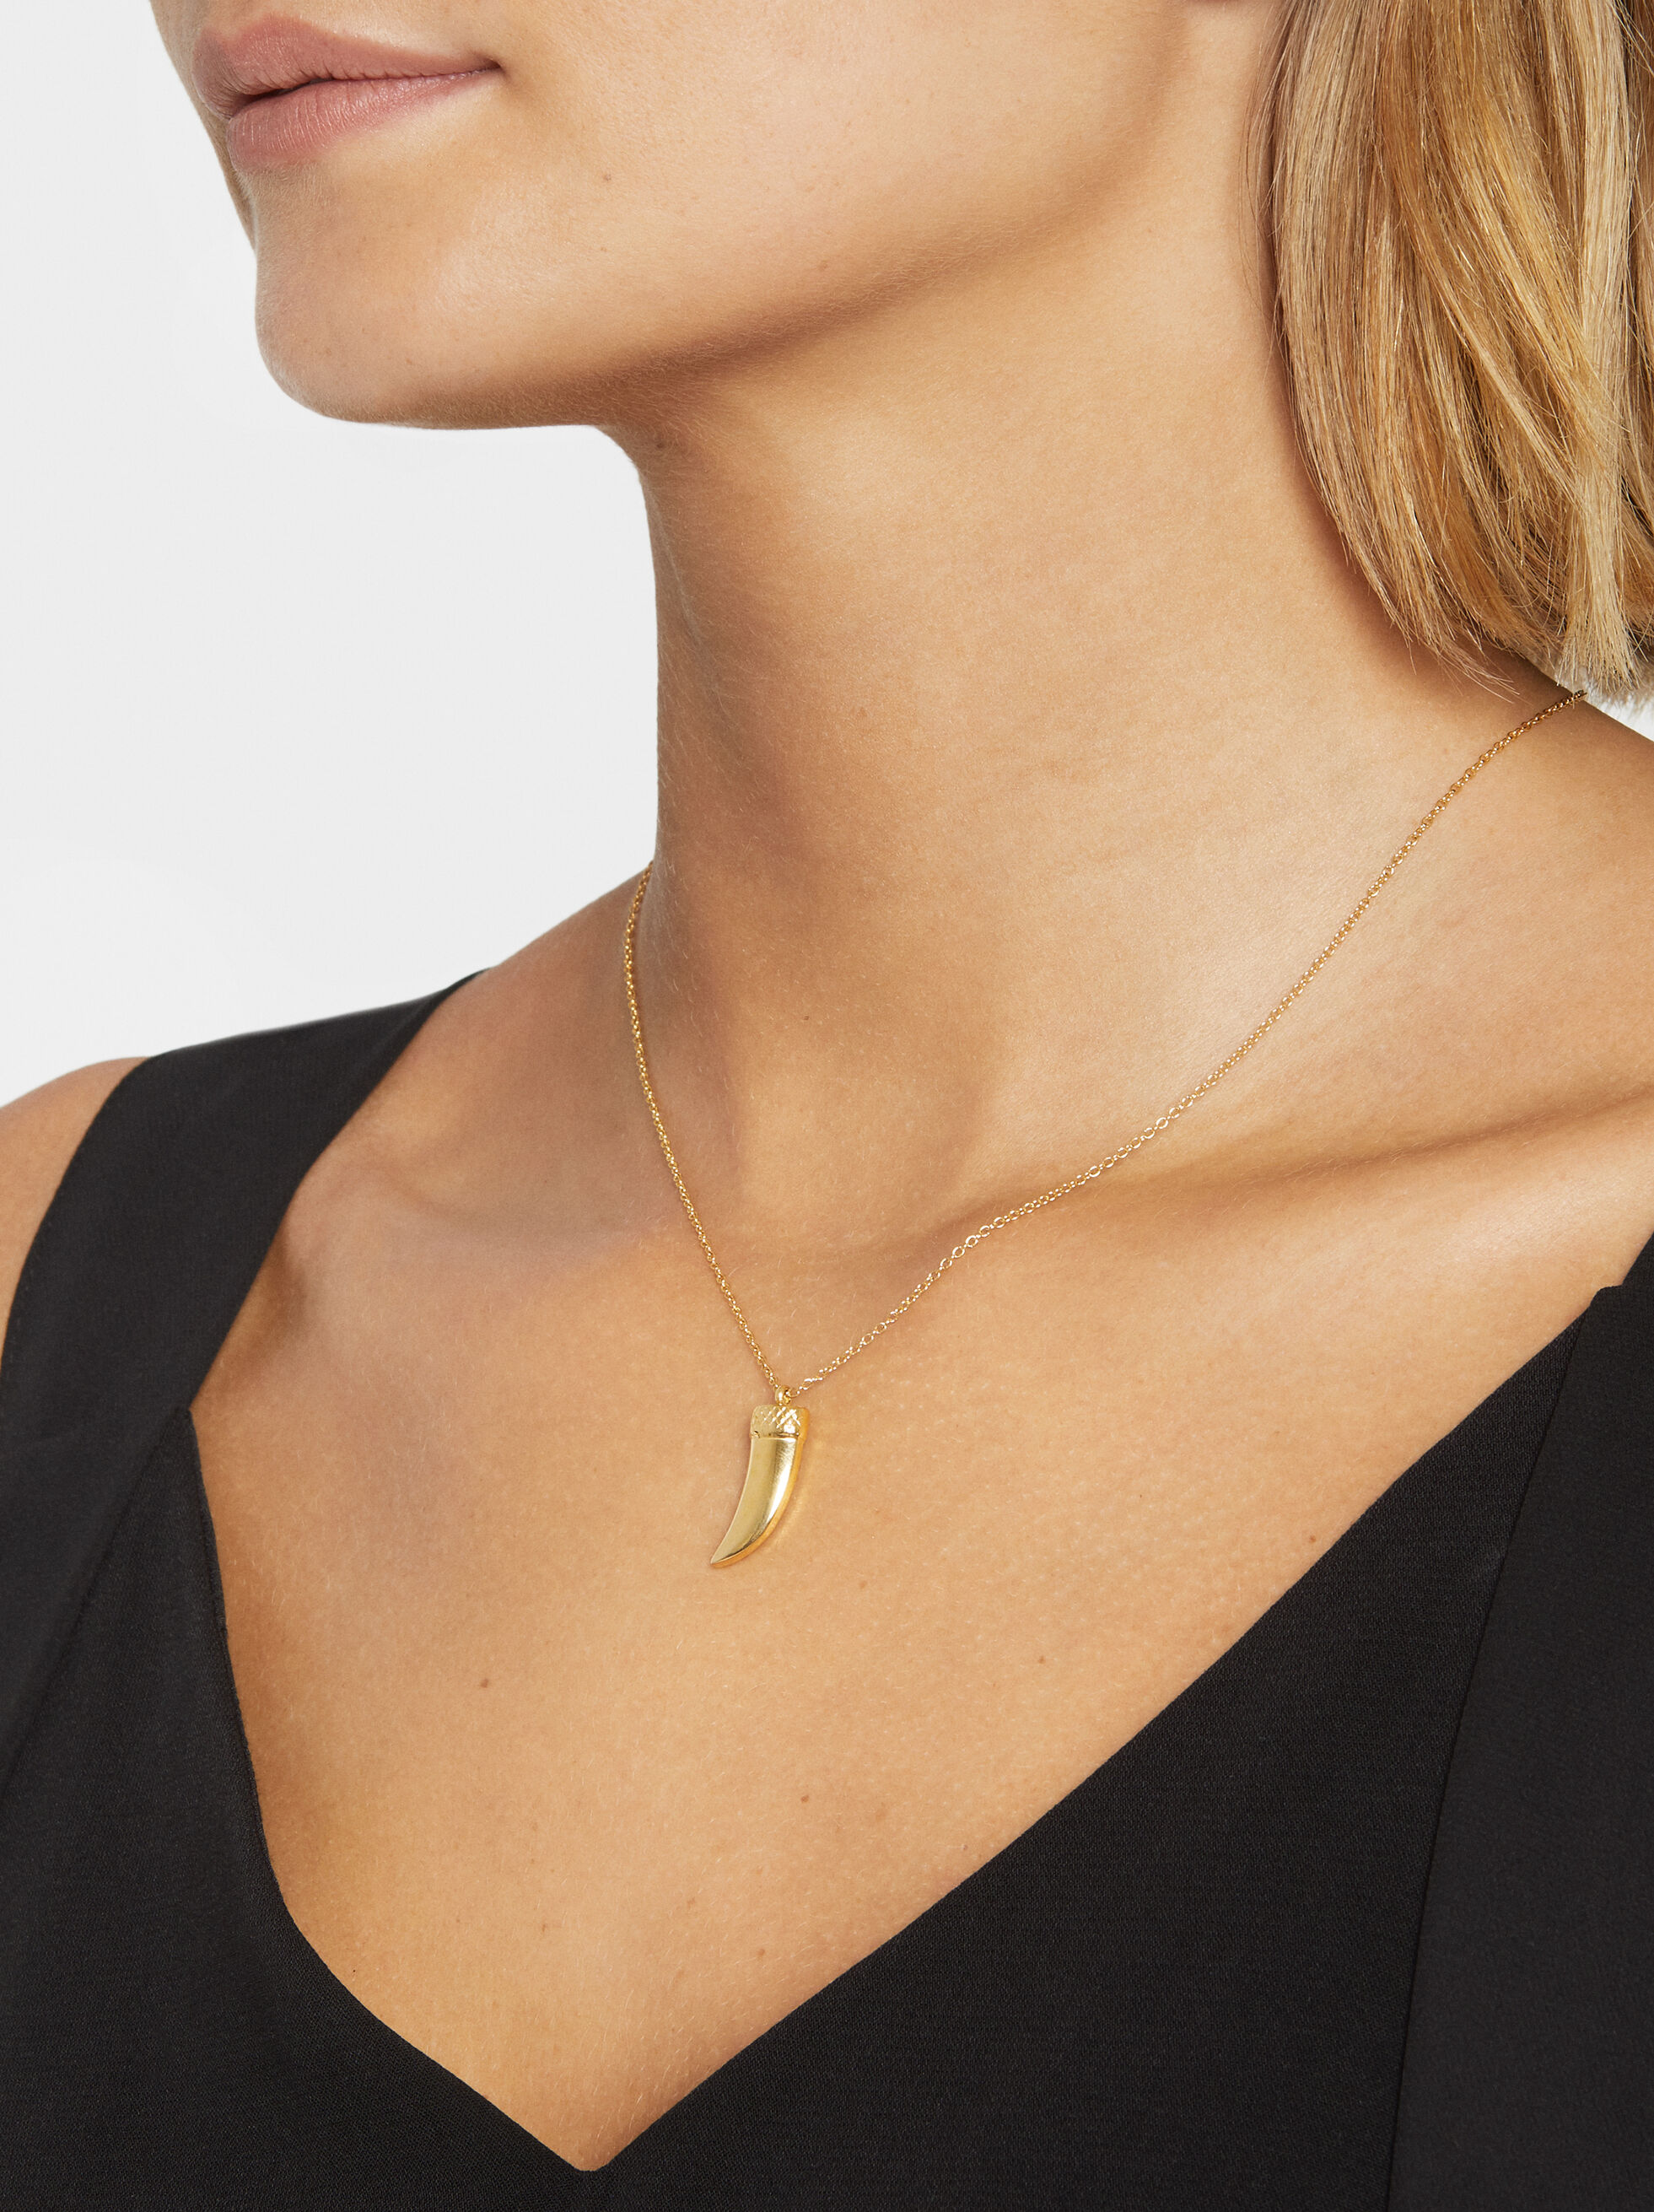 Long Steel Necklace With Pendant, Golden, hi-res